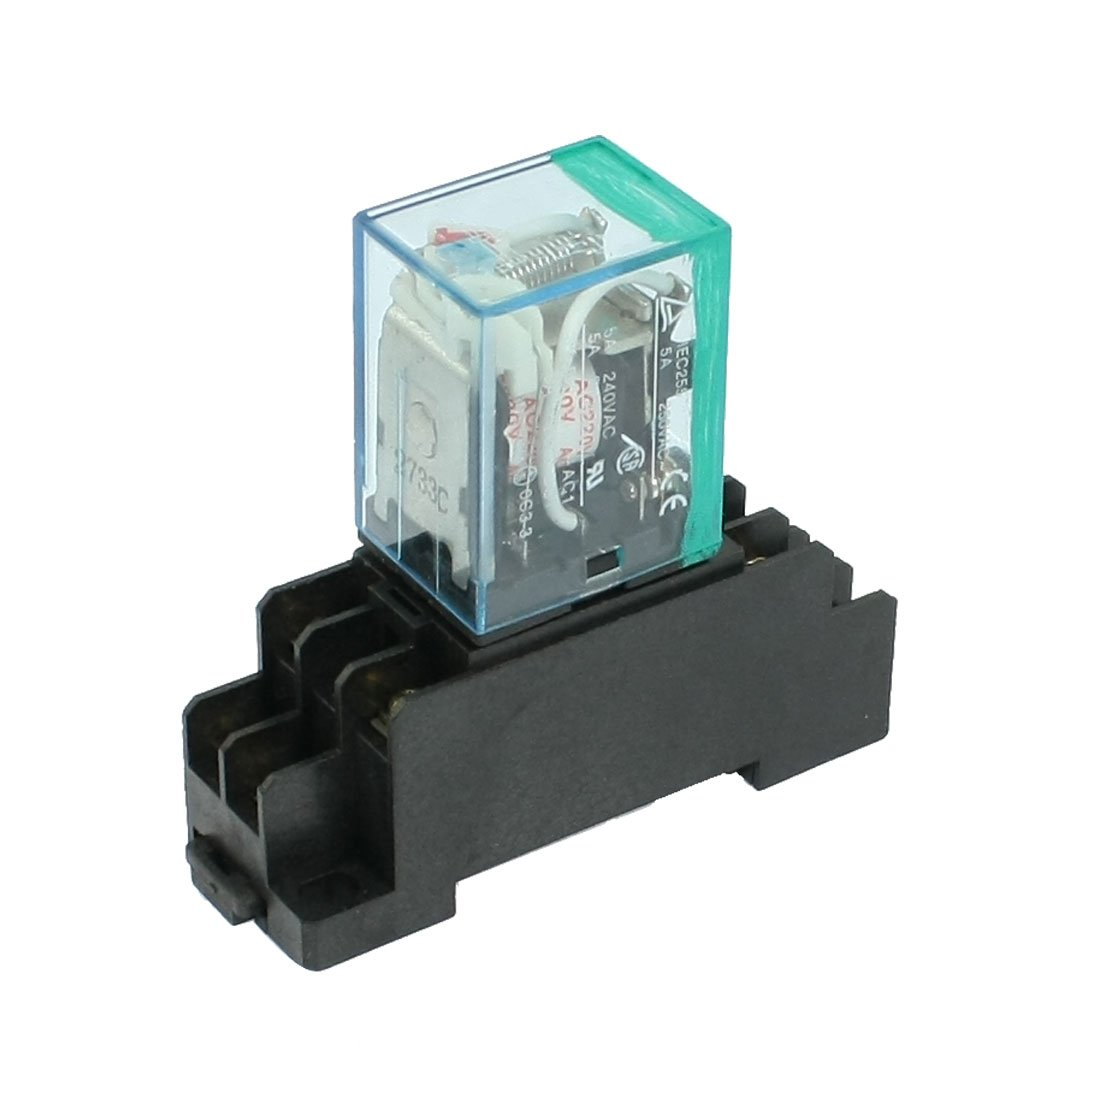 Pole Relay 12v Coil Dpdt Picturesque Latching 12vdc T Best Price Ac Power Pin Socket Base 1045x1078